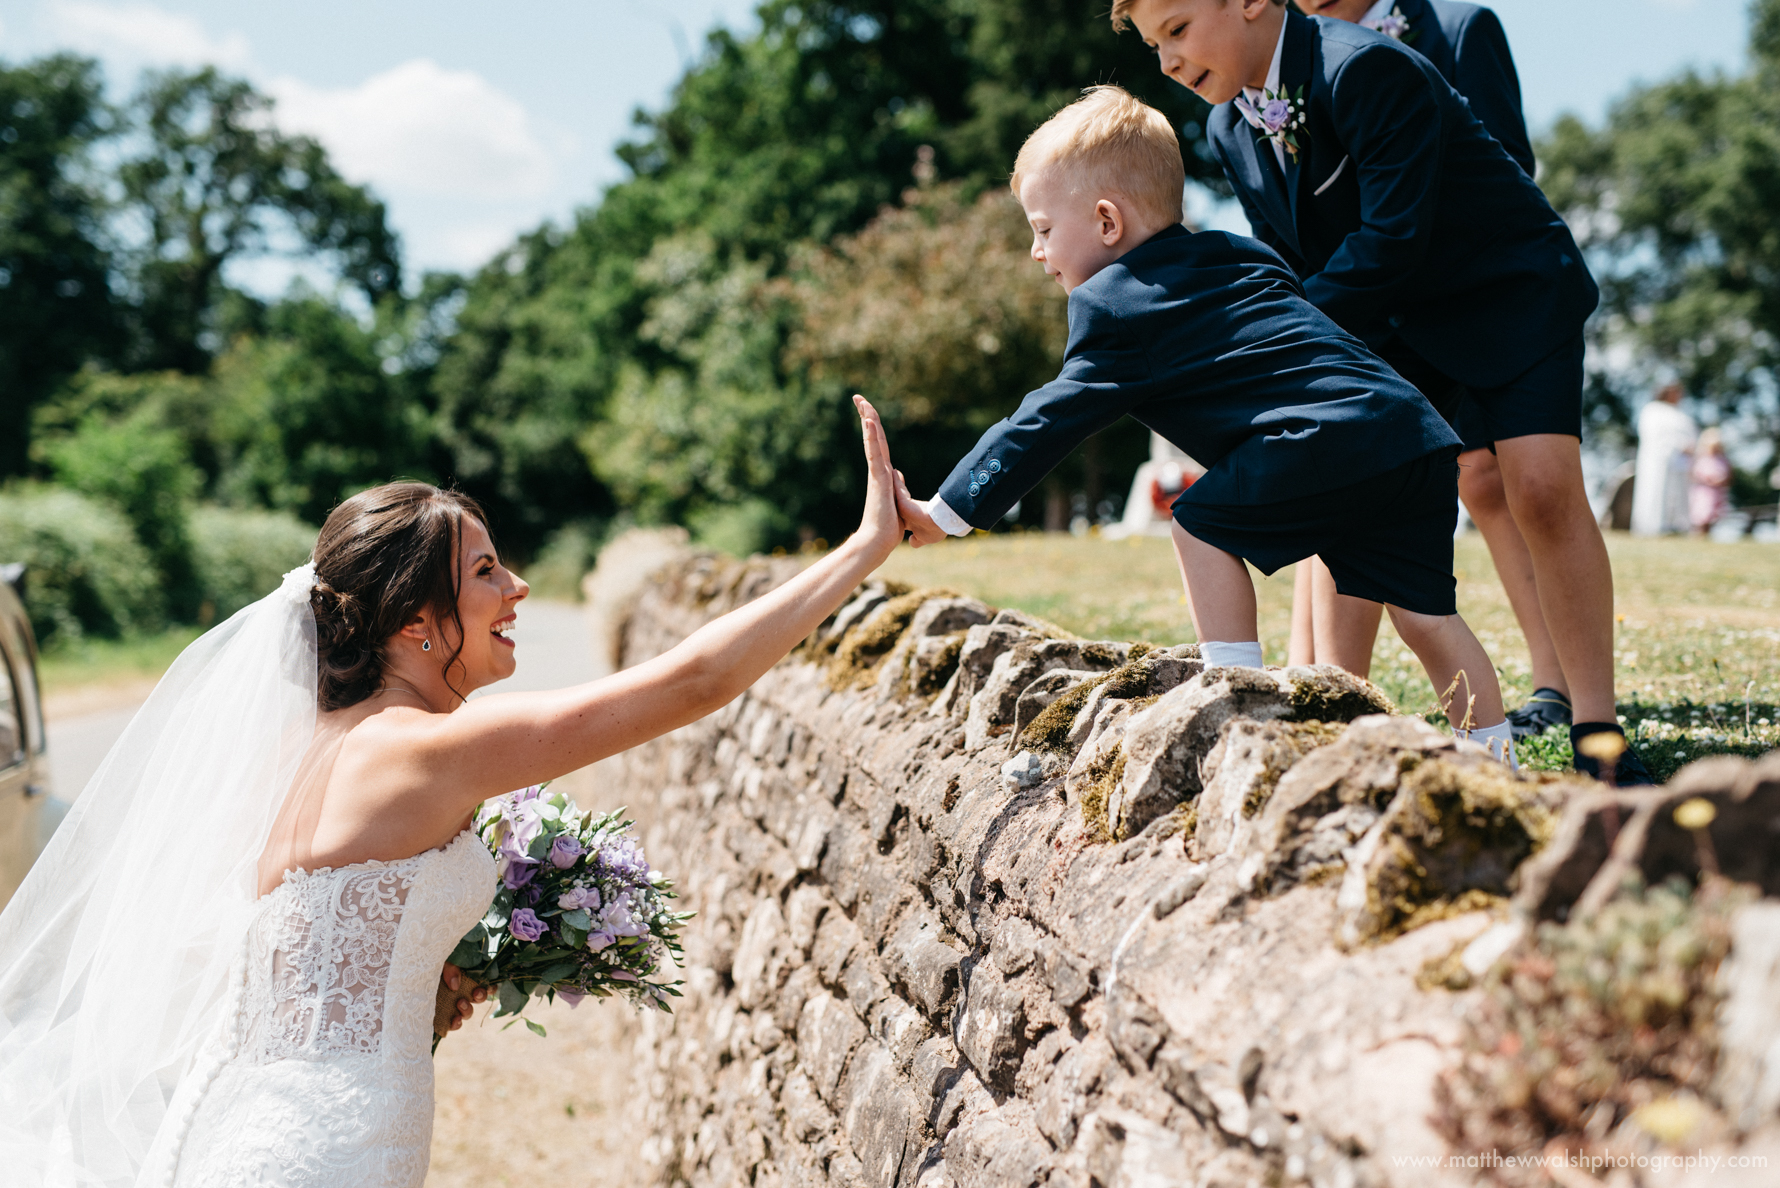 High 5 time for the bride and little boy